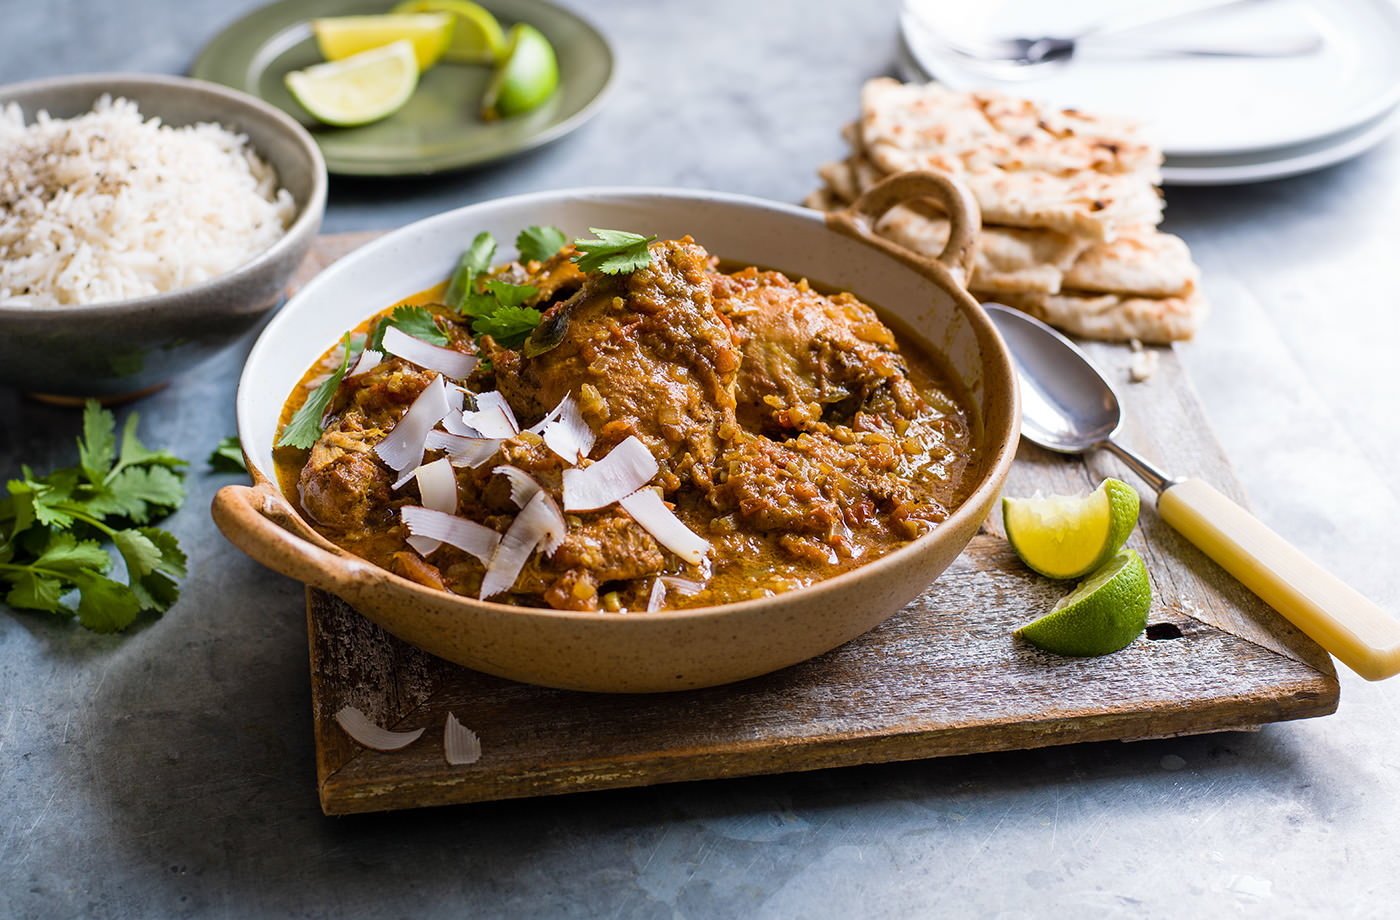 Slow cooker south Indian chicken curry recipe